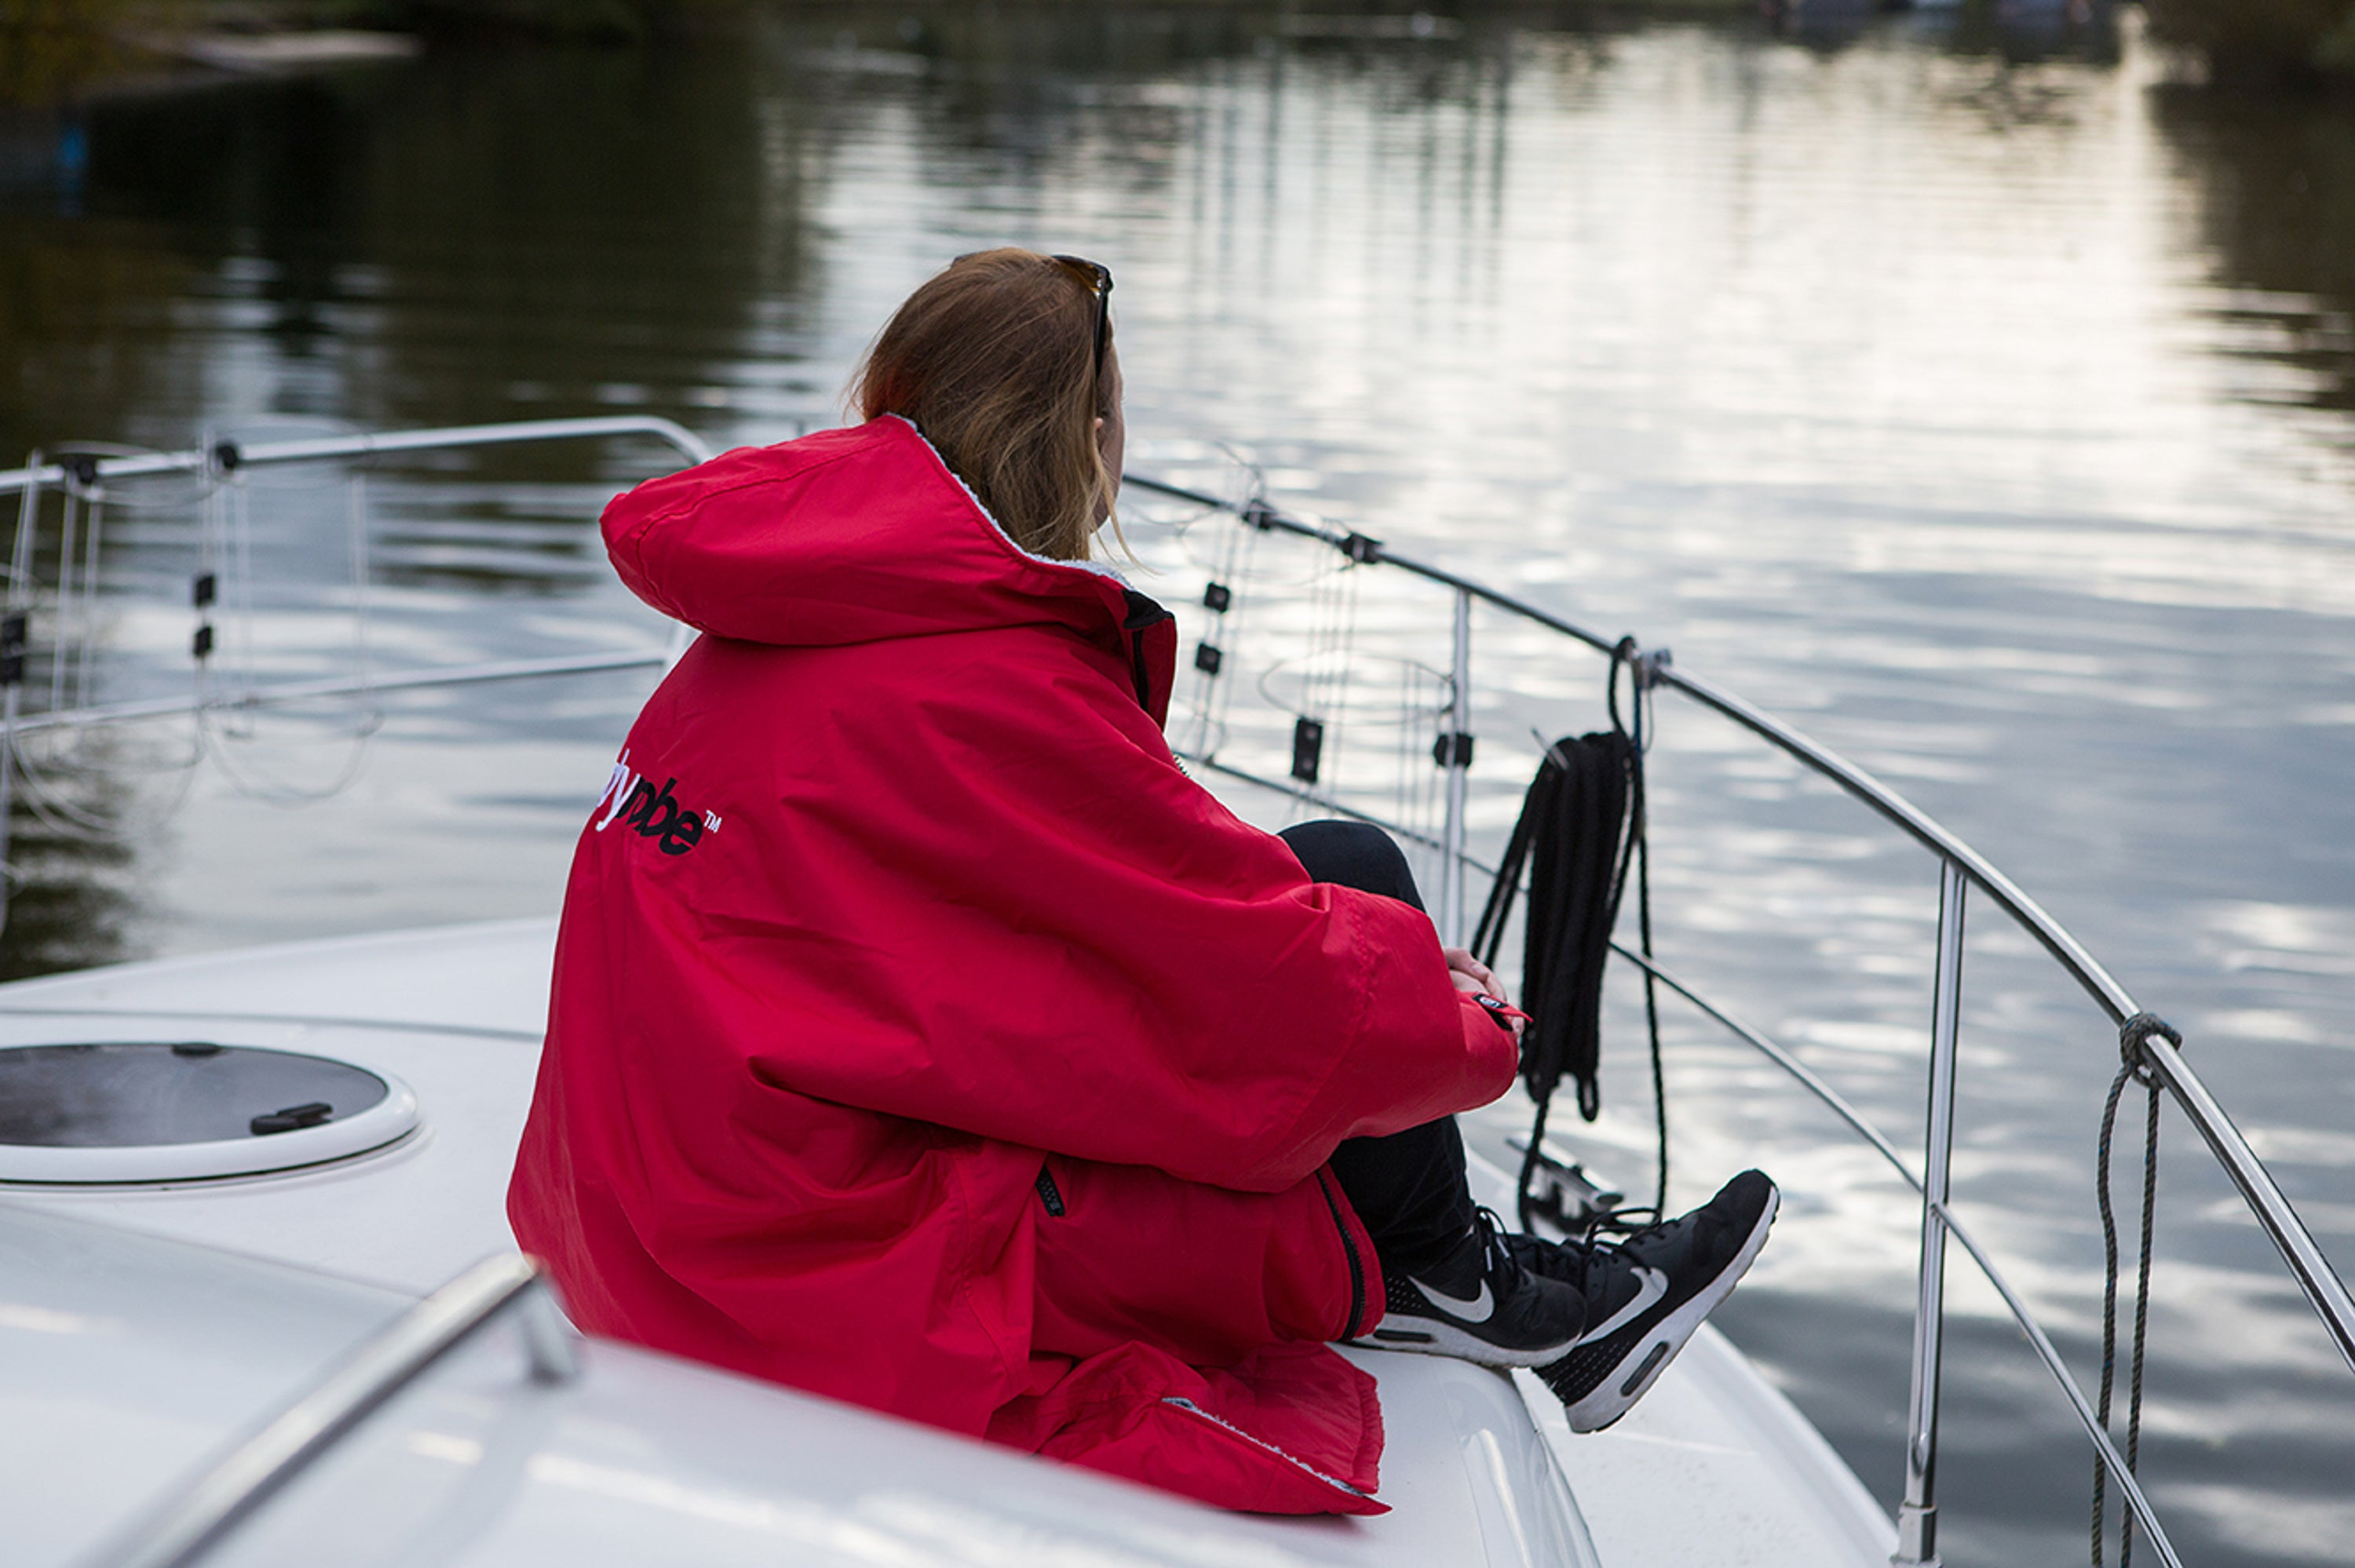 Woman sat on a boat in a dryrobe